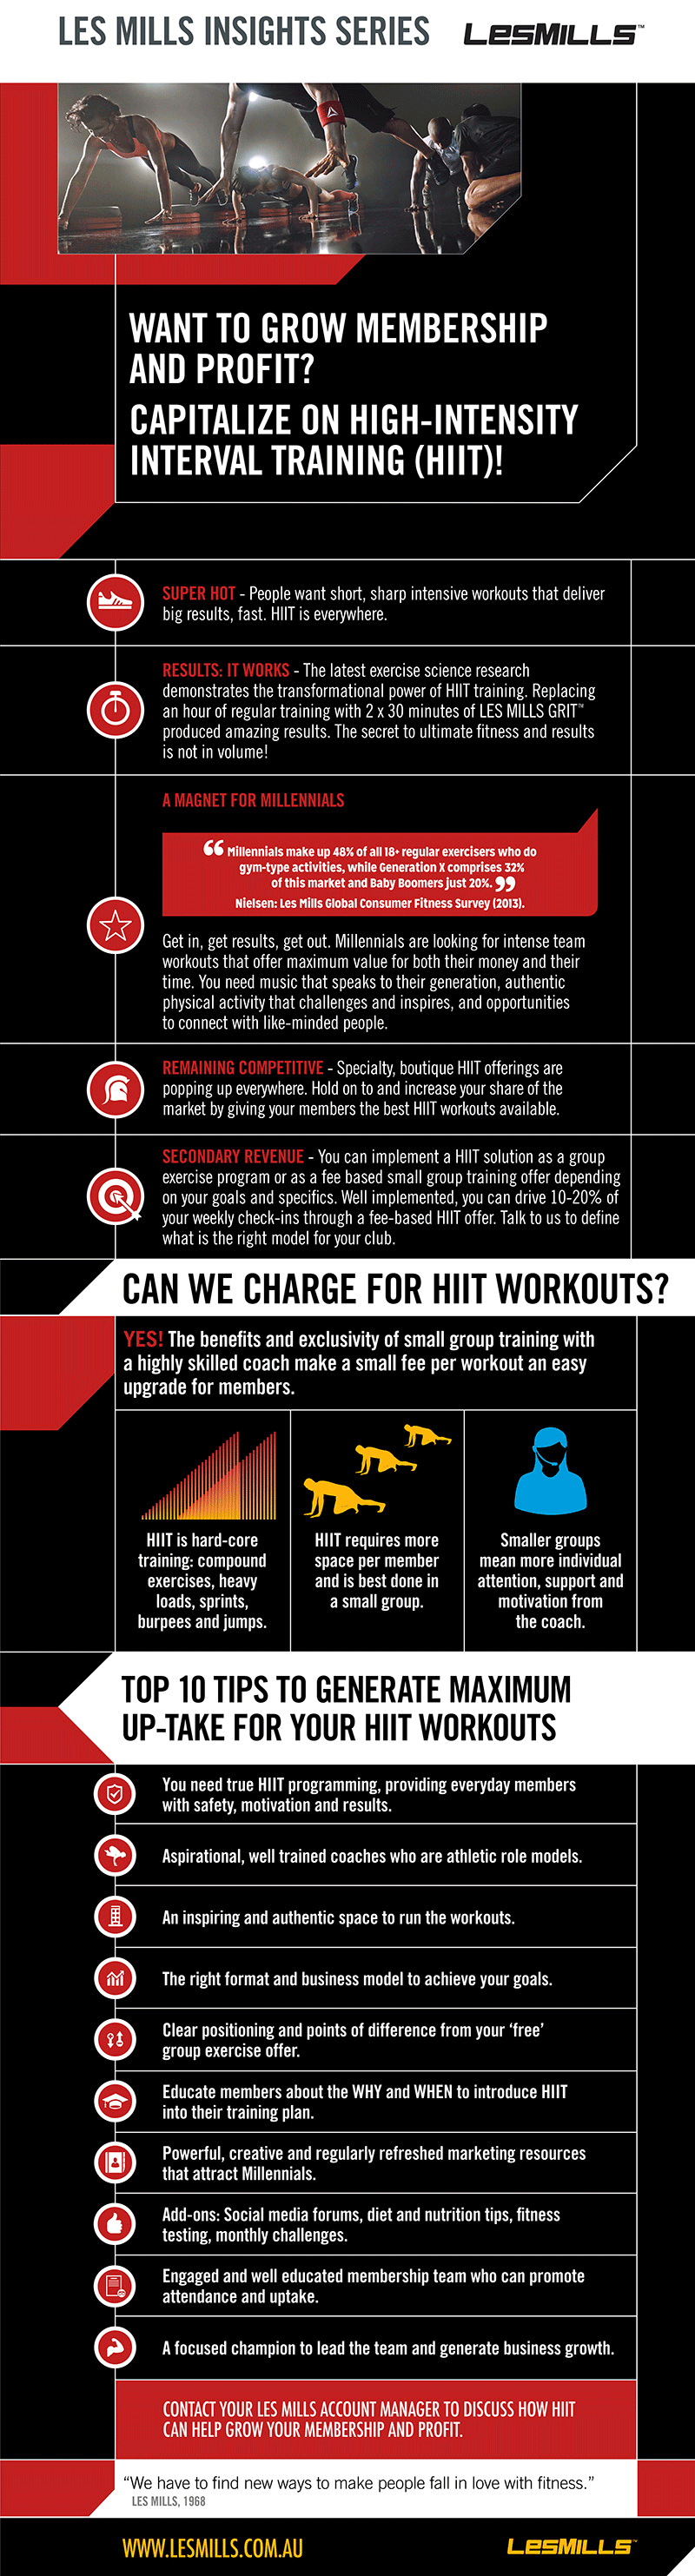 HIIT-changes